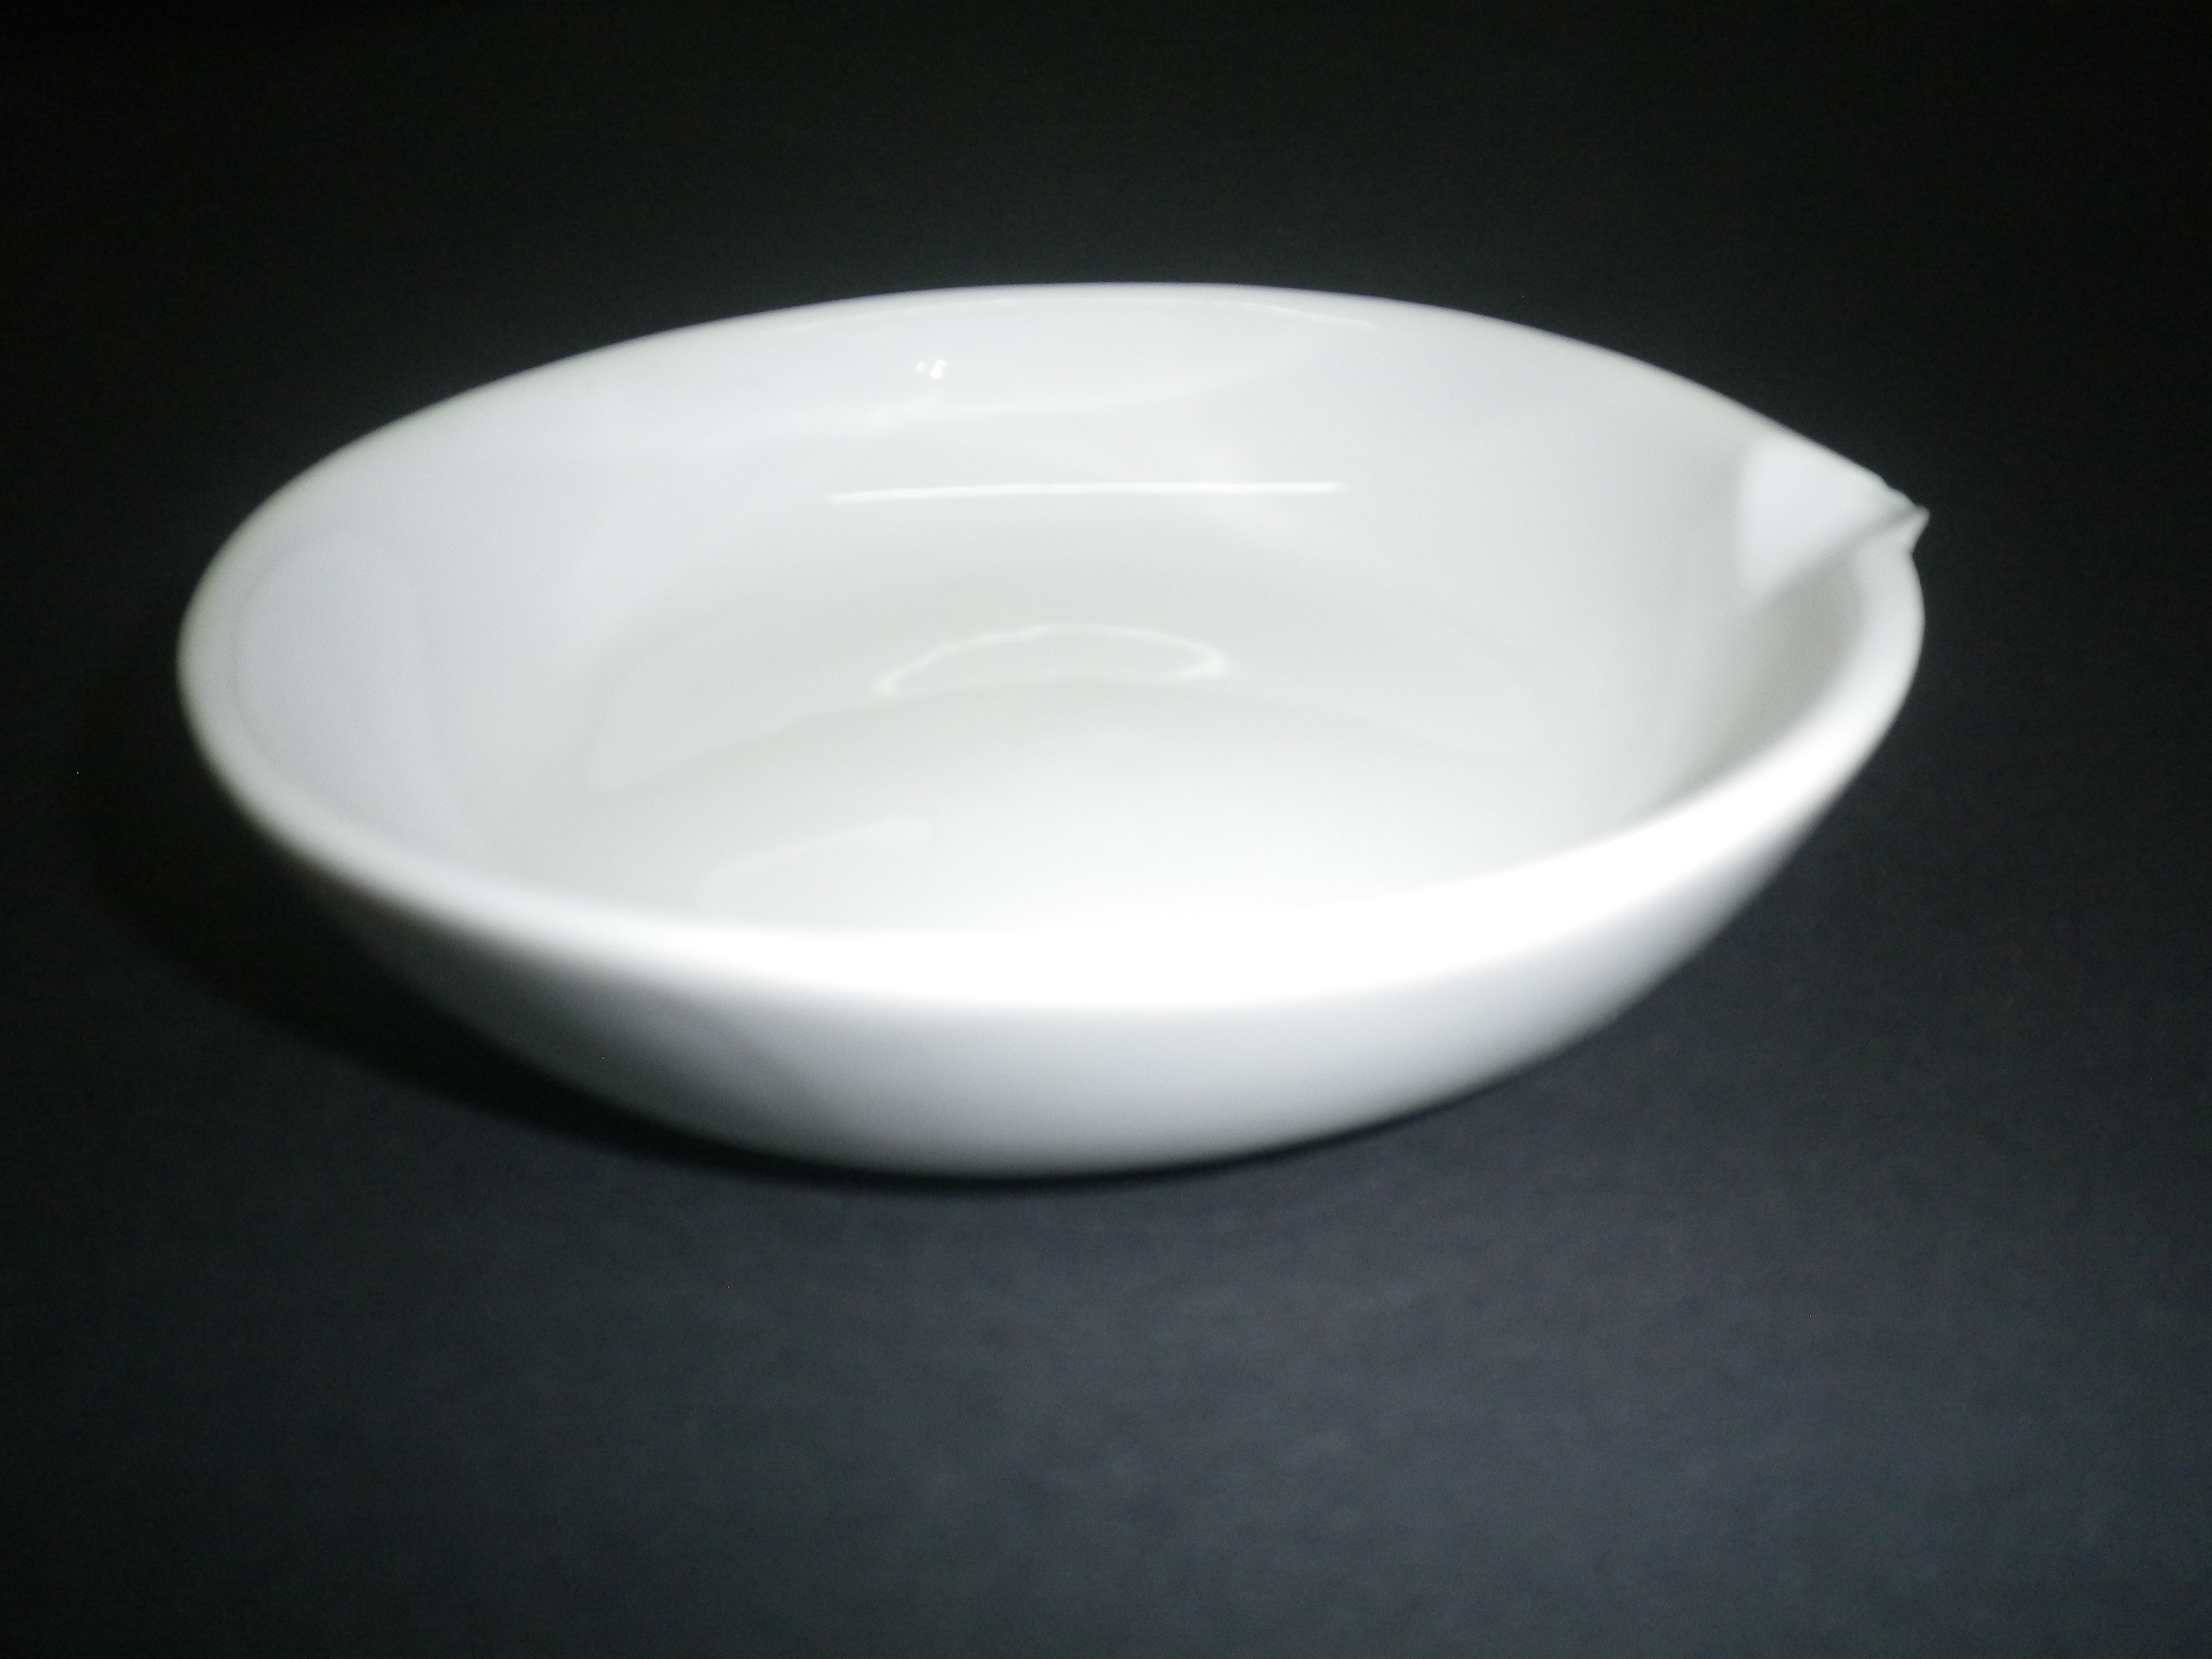 Evaporating dish 40 ml, porcelain, with spout and flat bottom - SIM ... for Evaporating Dish Laboratory Apparatus  166kxo